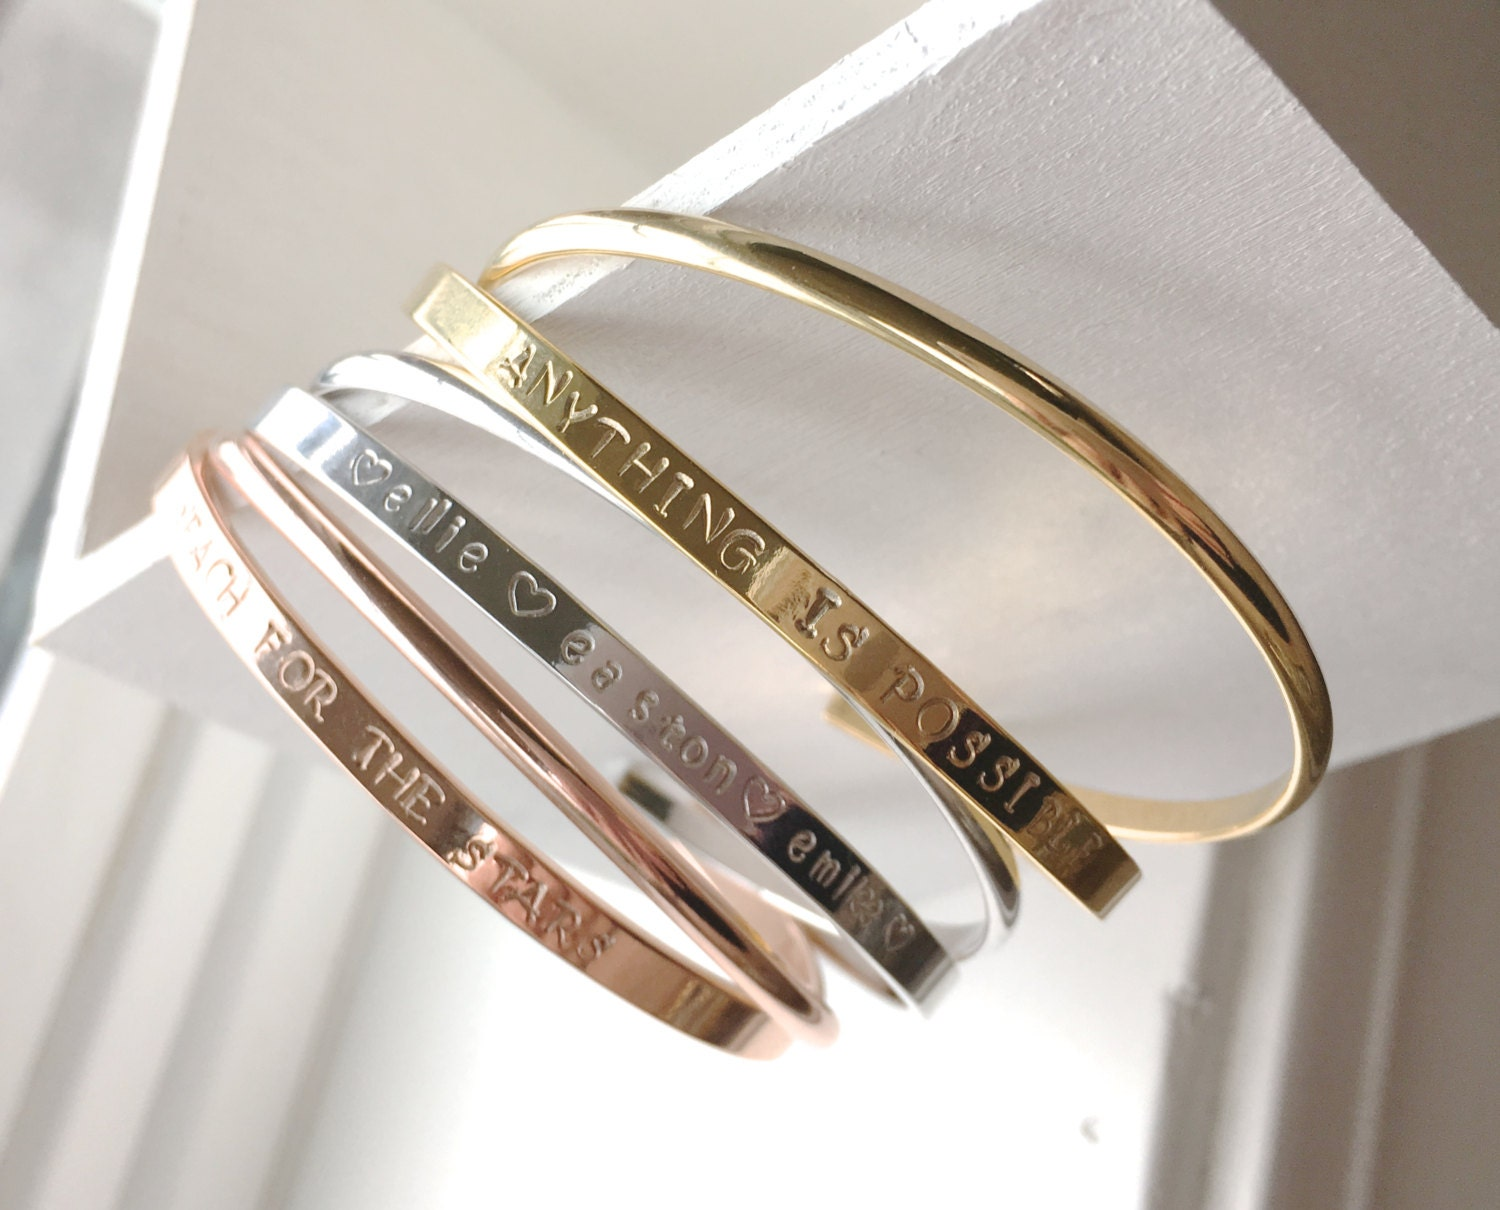 personalised by bangle product sallyclayjewellerydesign personalized sally clay bangles bracelet story bracelets storyteller necklace or your original